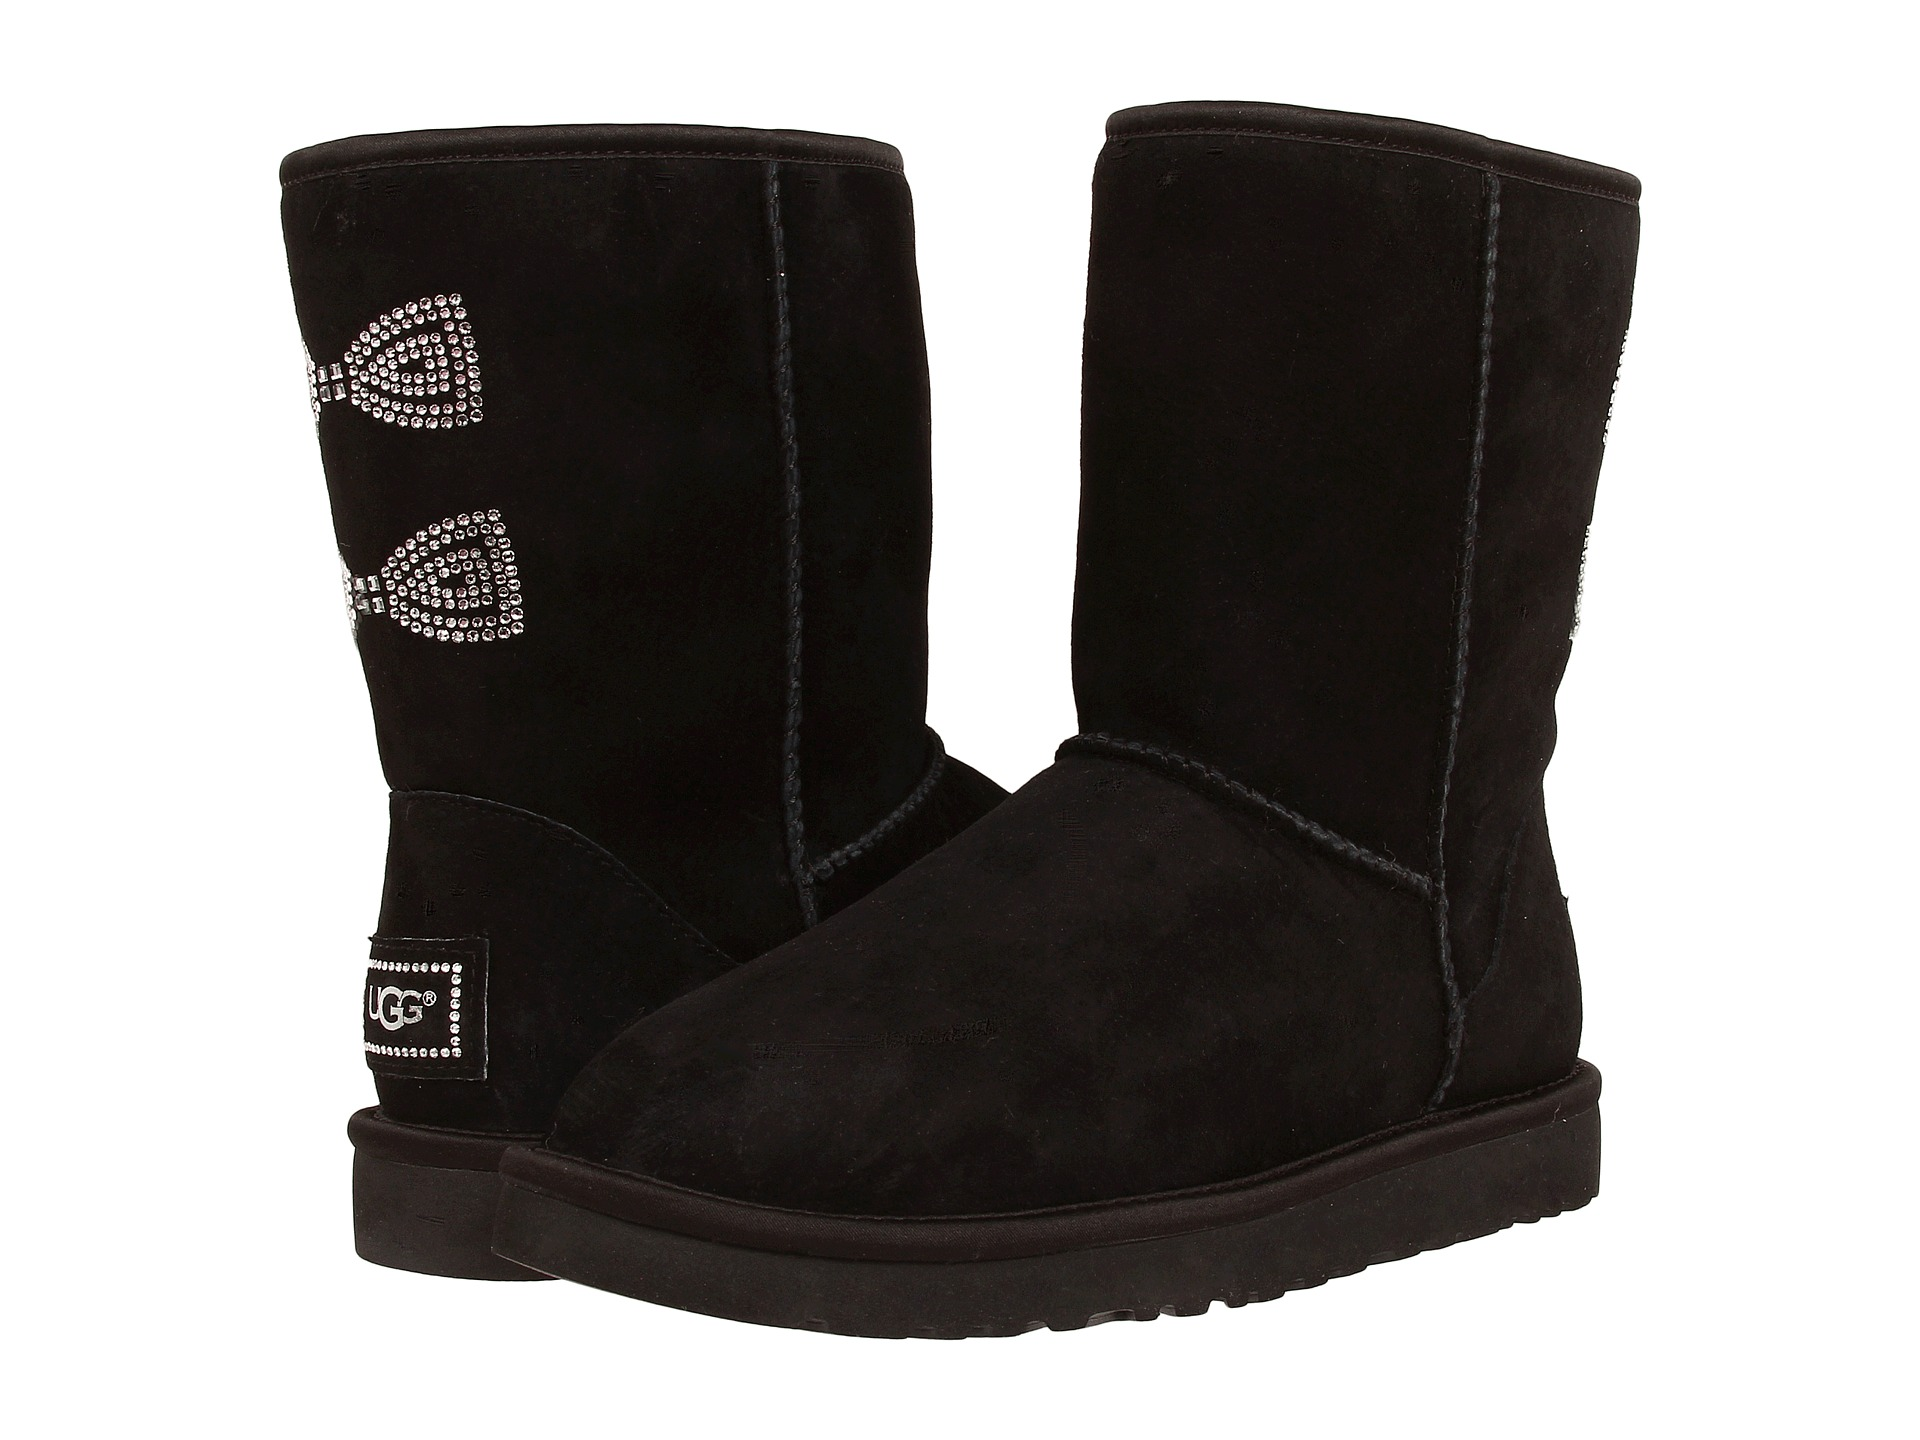 3c3a59310c6 Ugg Classic Short Crystal Bow Boots